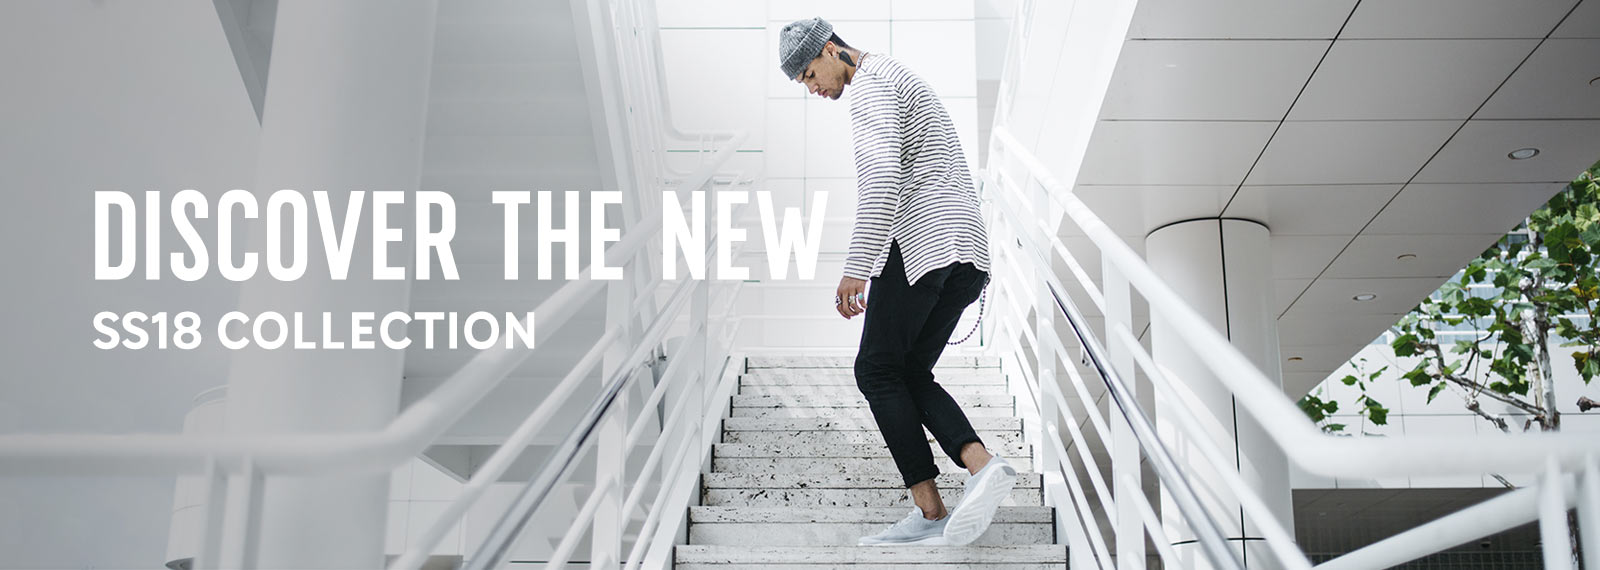 DISCOVER THE NEW COLLECTION